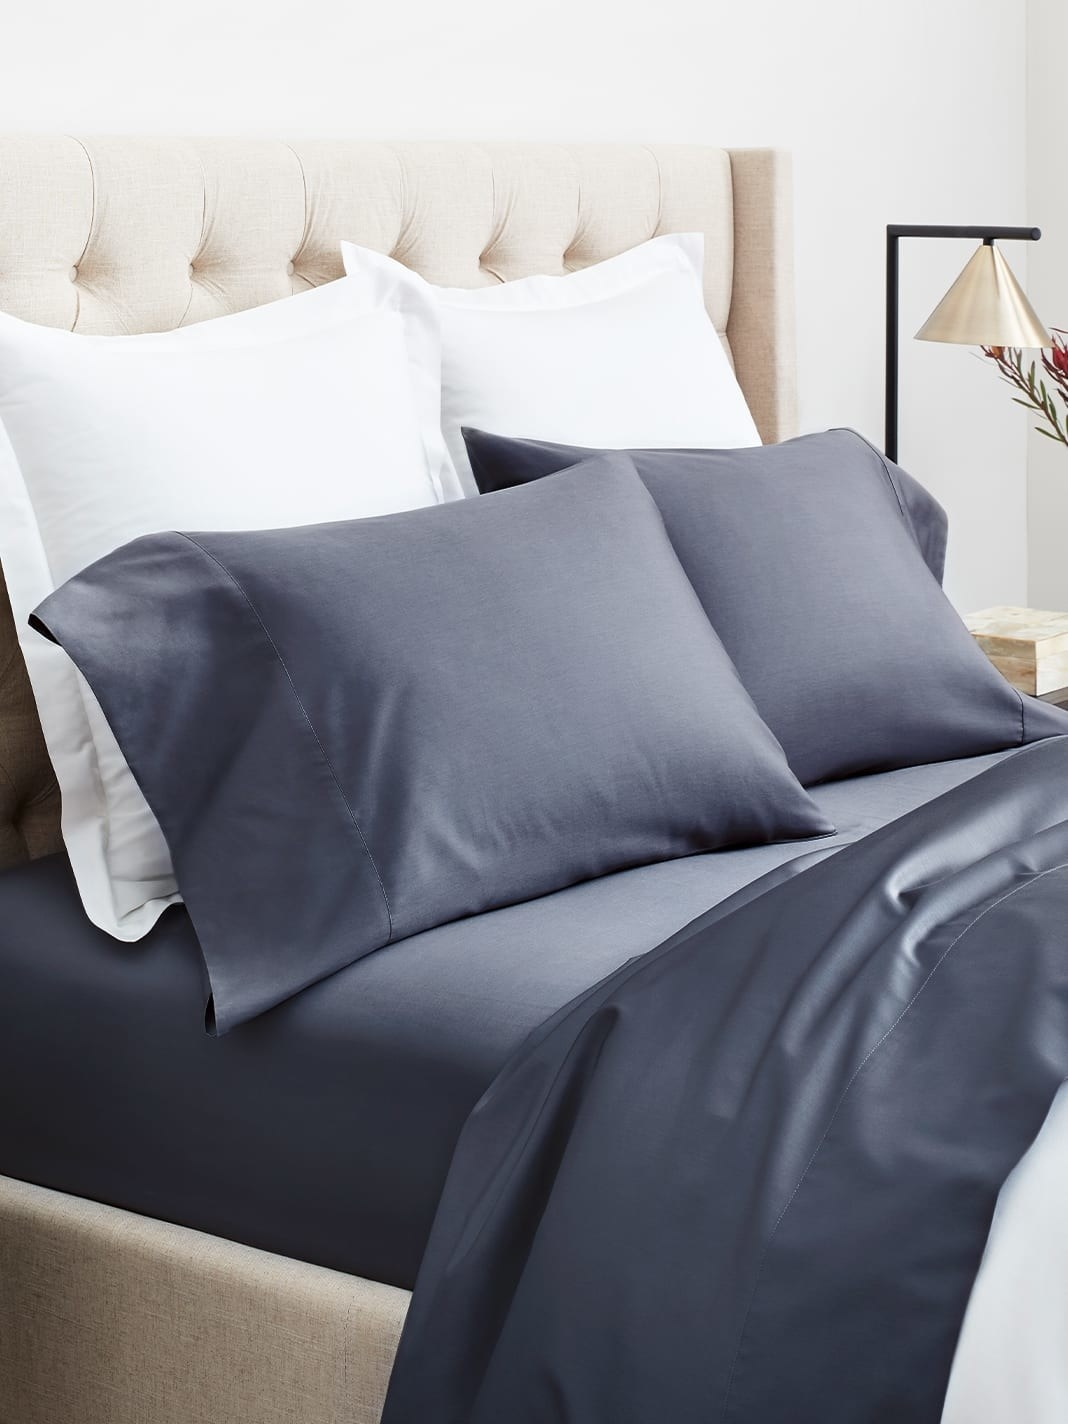 The sheet set in dark blue/gray on a bed